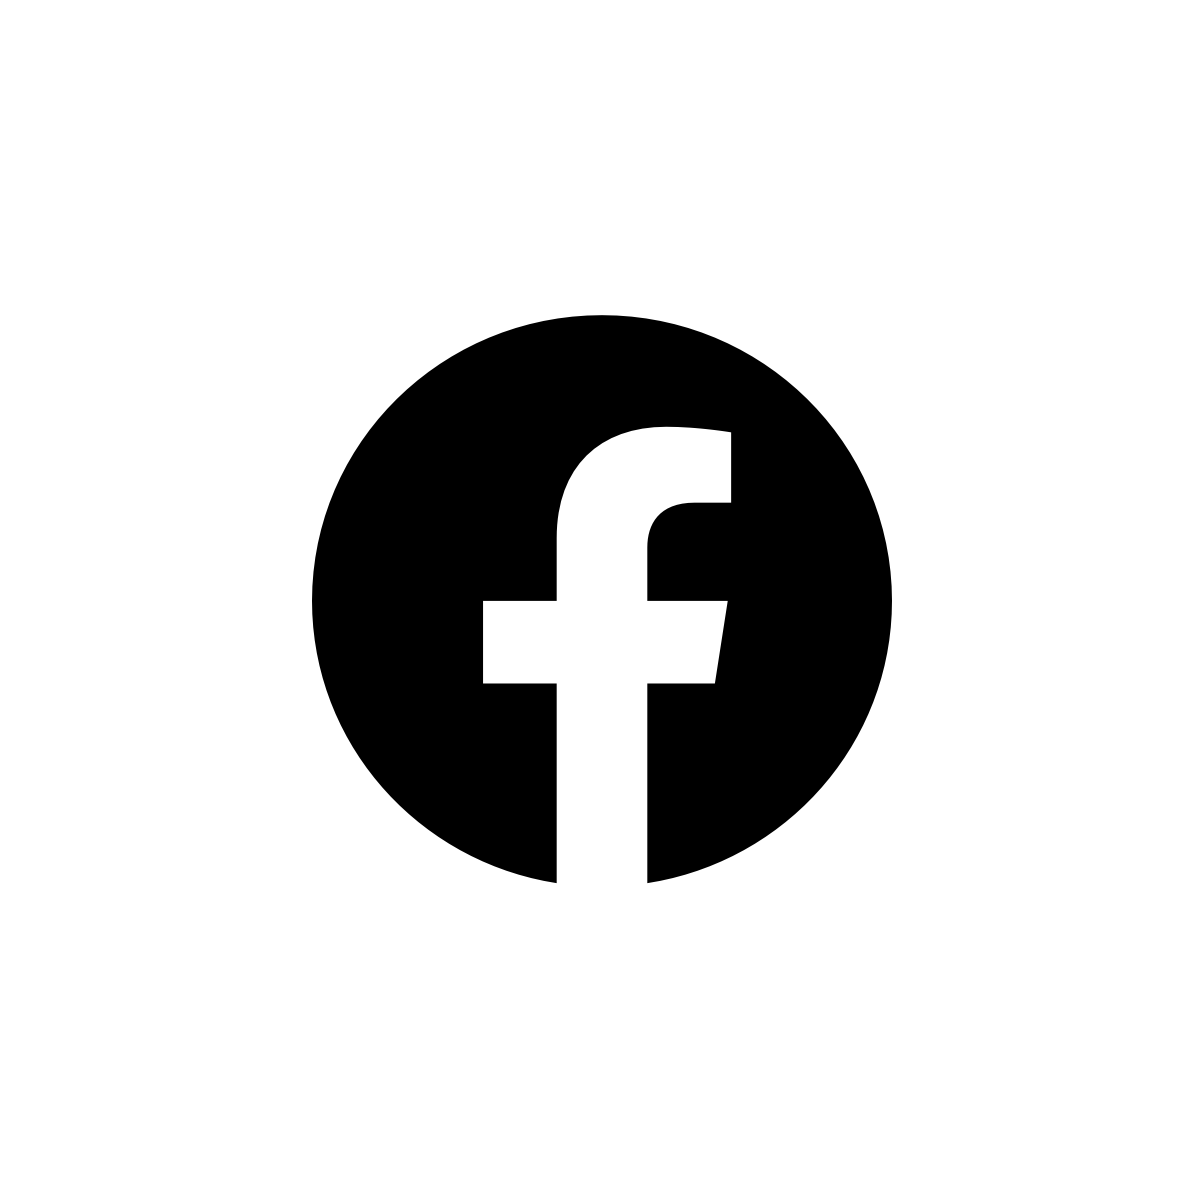 Photo of Facebook icon